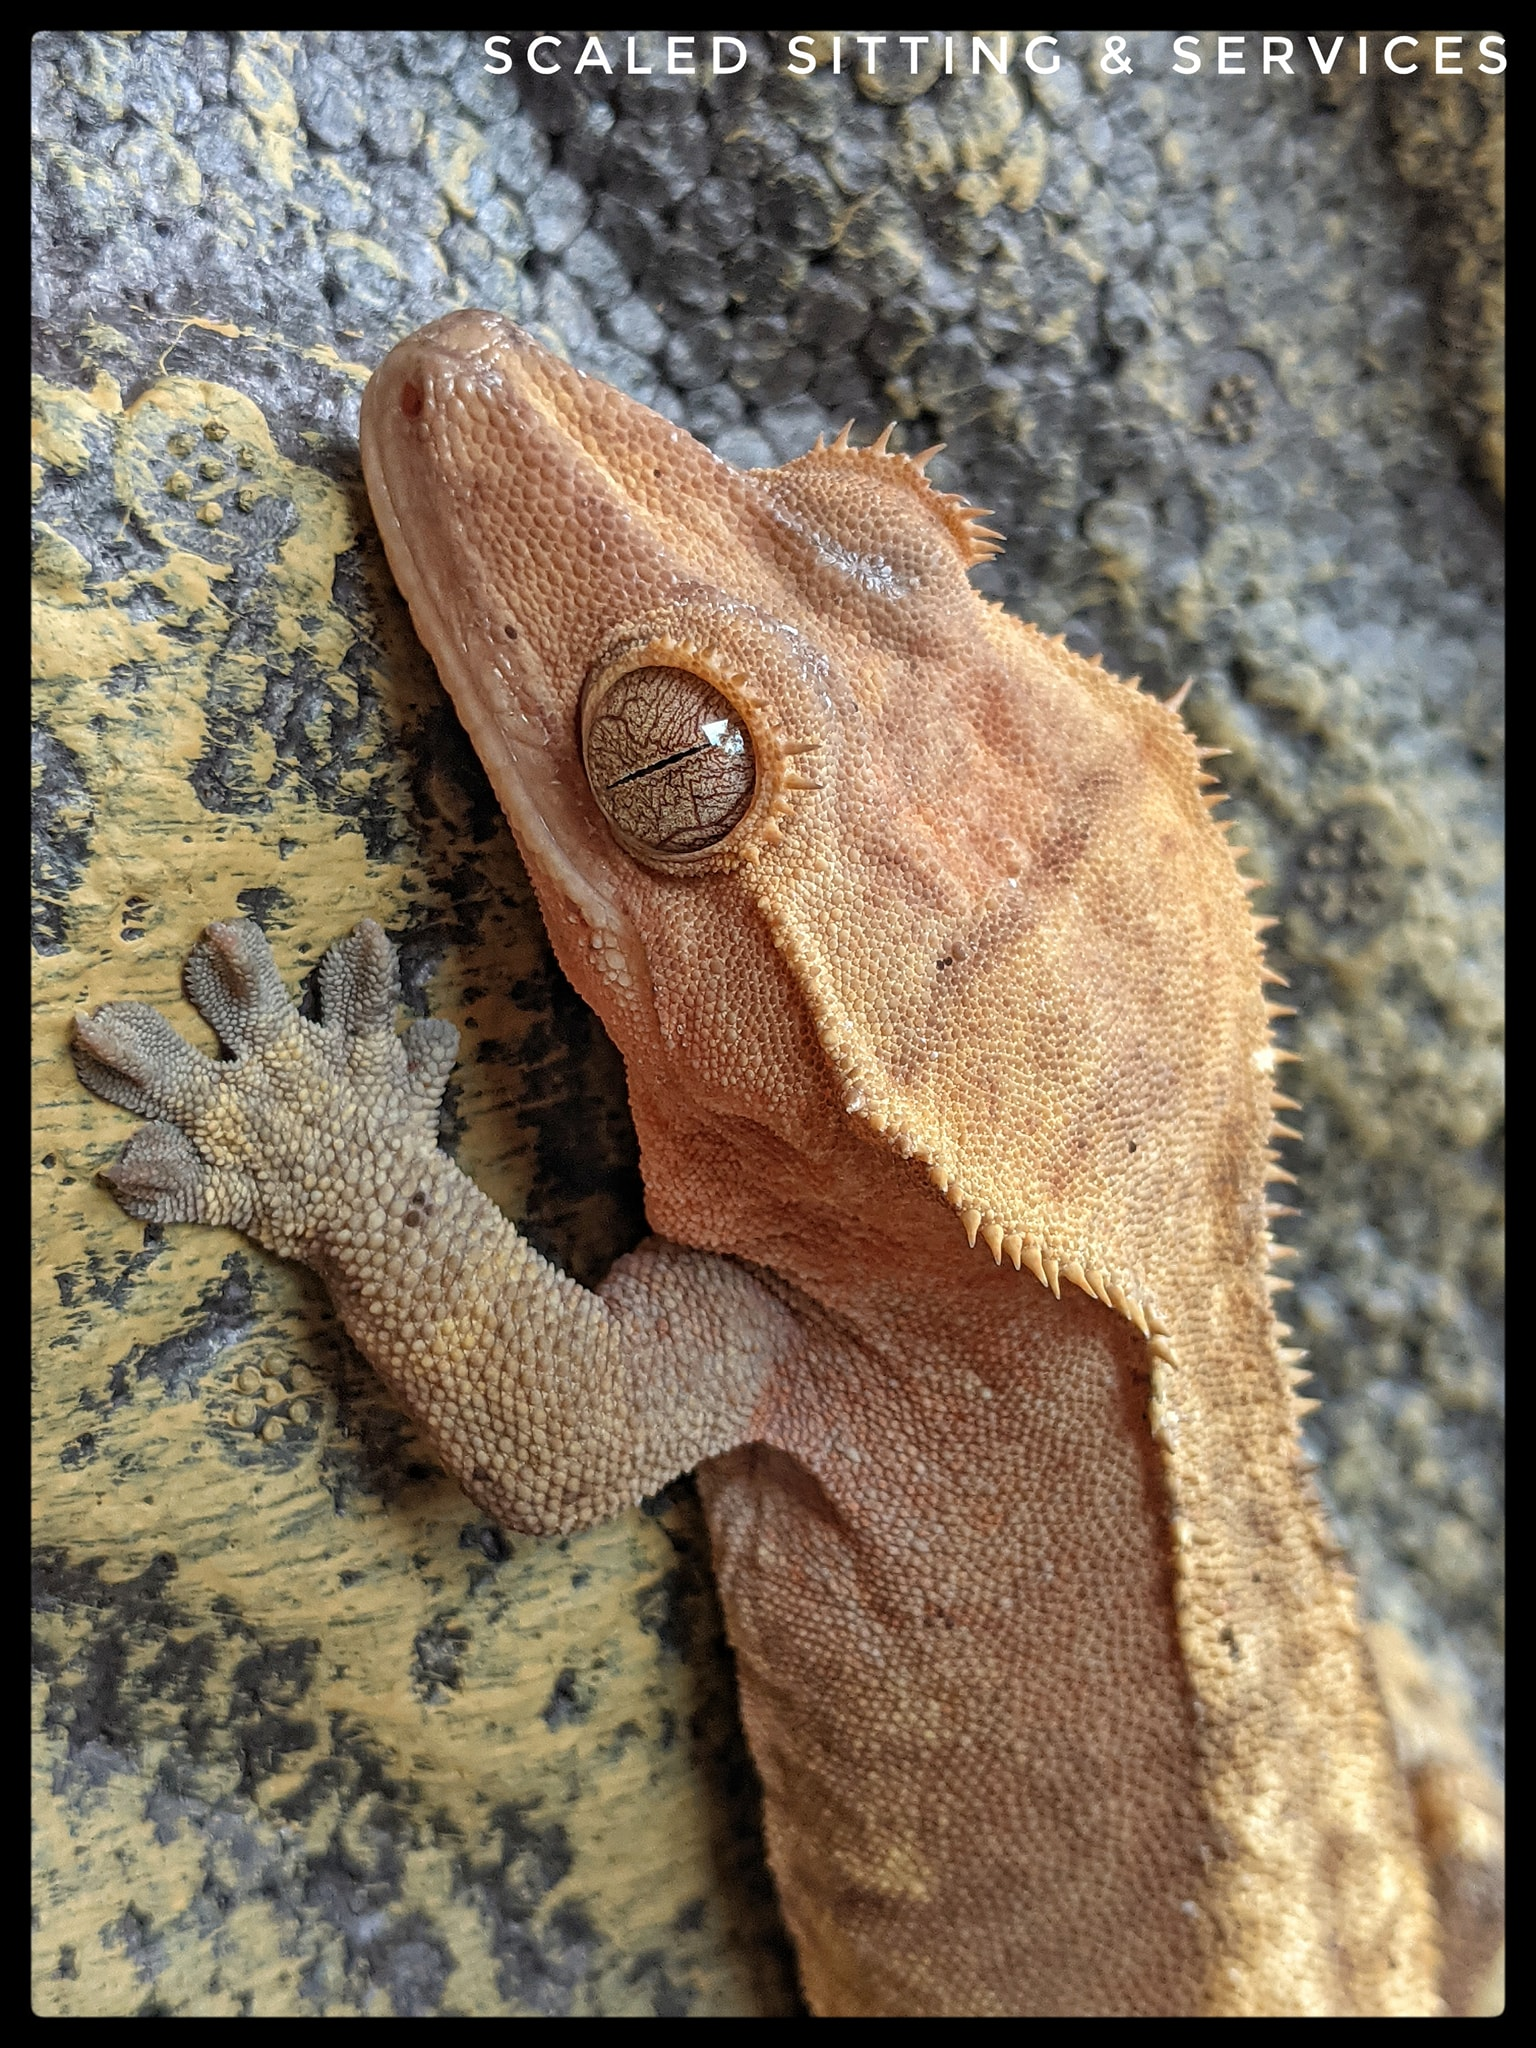 close up head shot of crested gecko